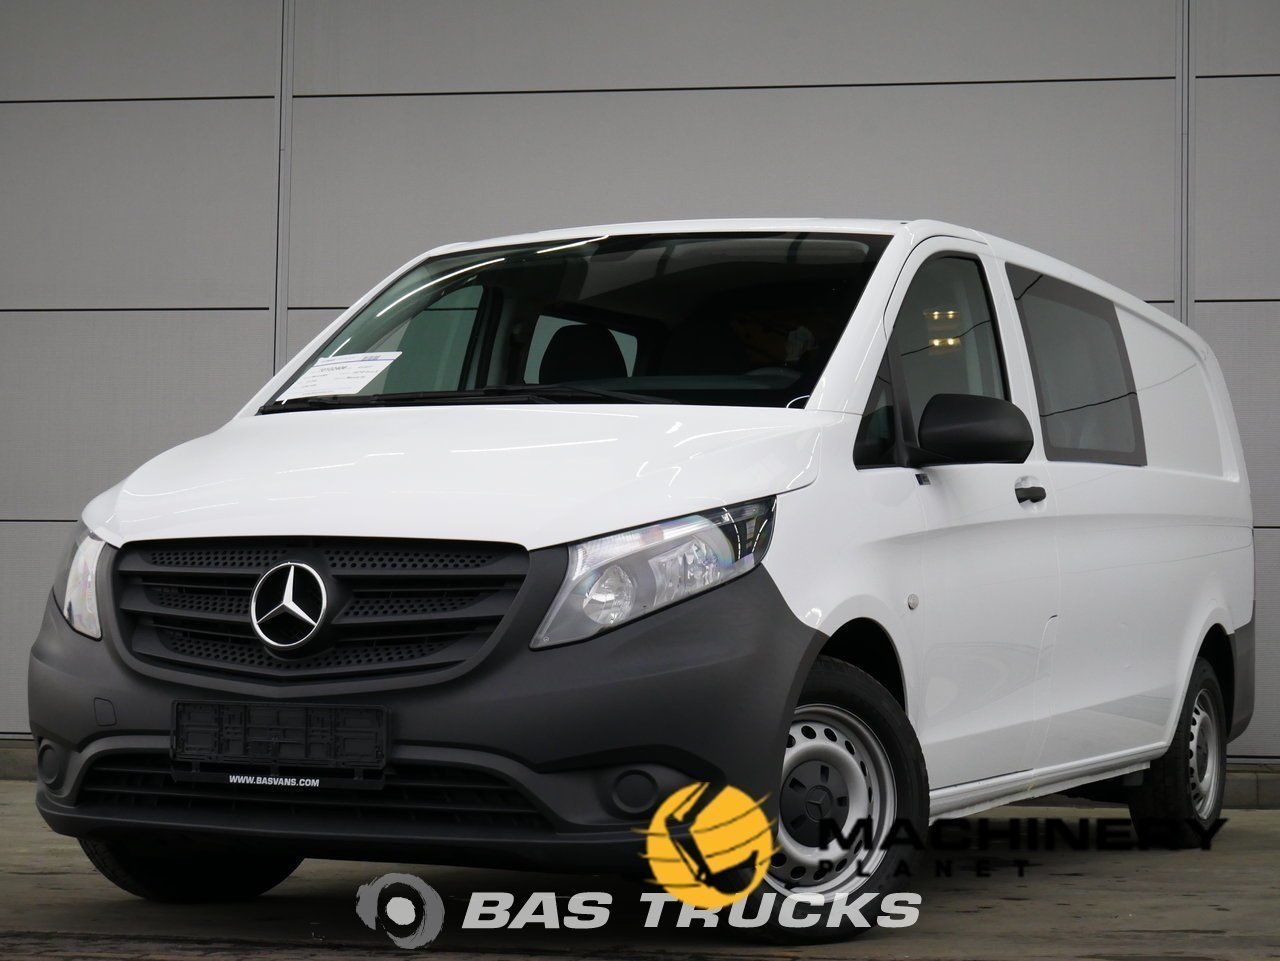 Used-Light-commercial-vehicle-Mercedes-Vito-2017_145650_1-1554199672061_5ca334780ecaf-1.jpg